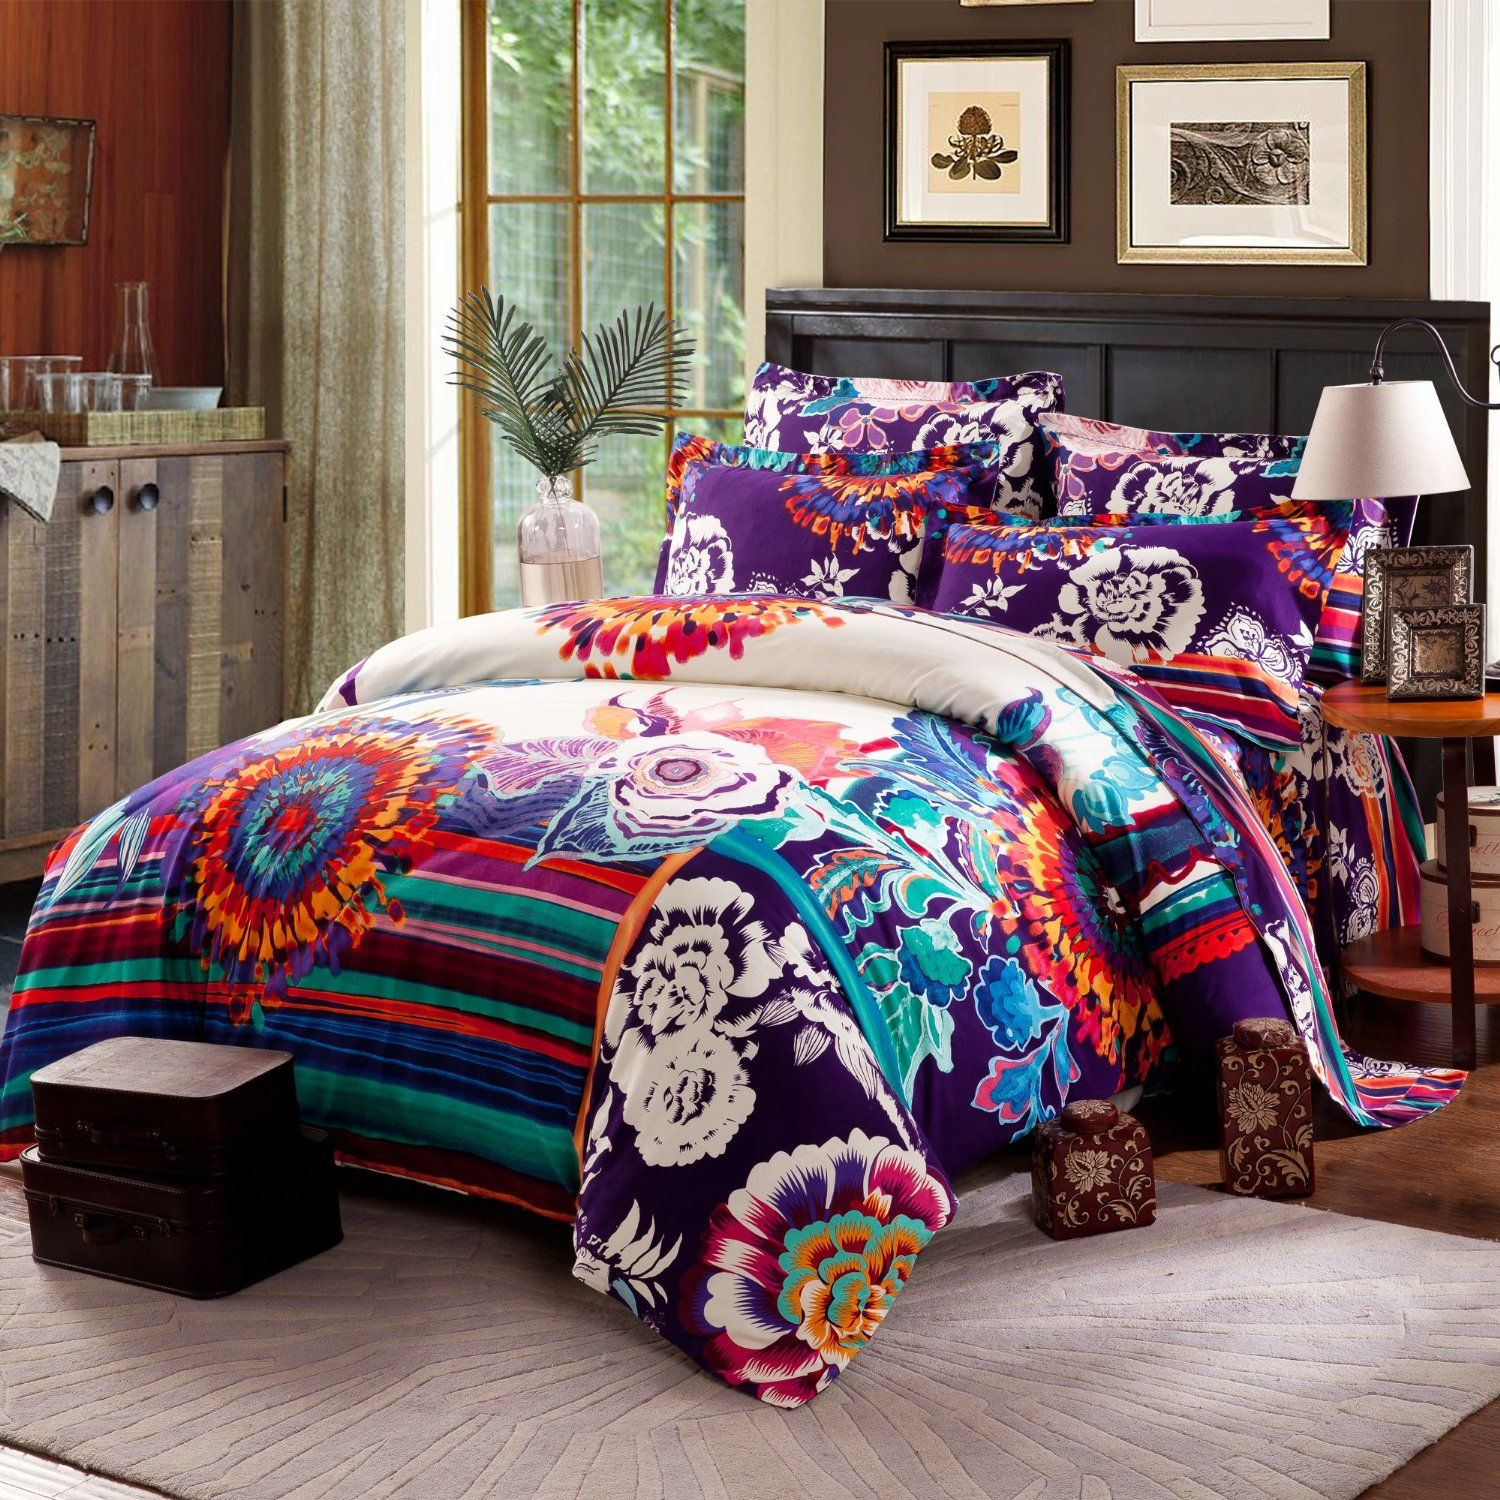 set quilt ethnic marigold indian duvet mehndi boho henna vintage pdx ambesonne inspired wayfair bohemian art bed bath